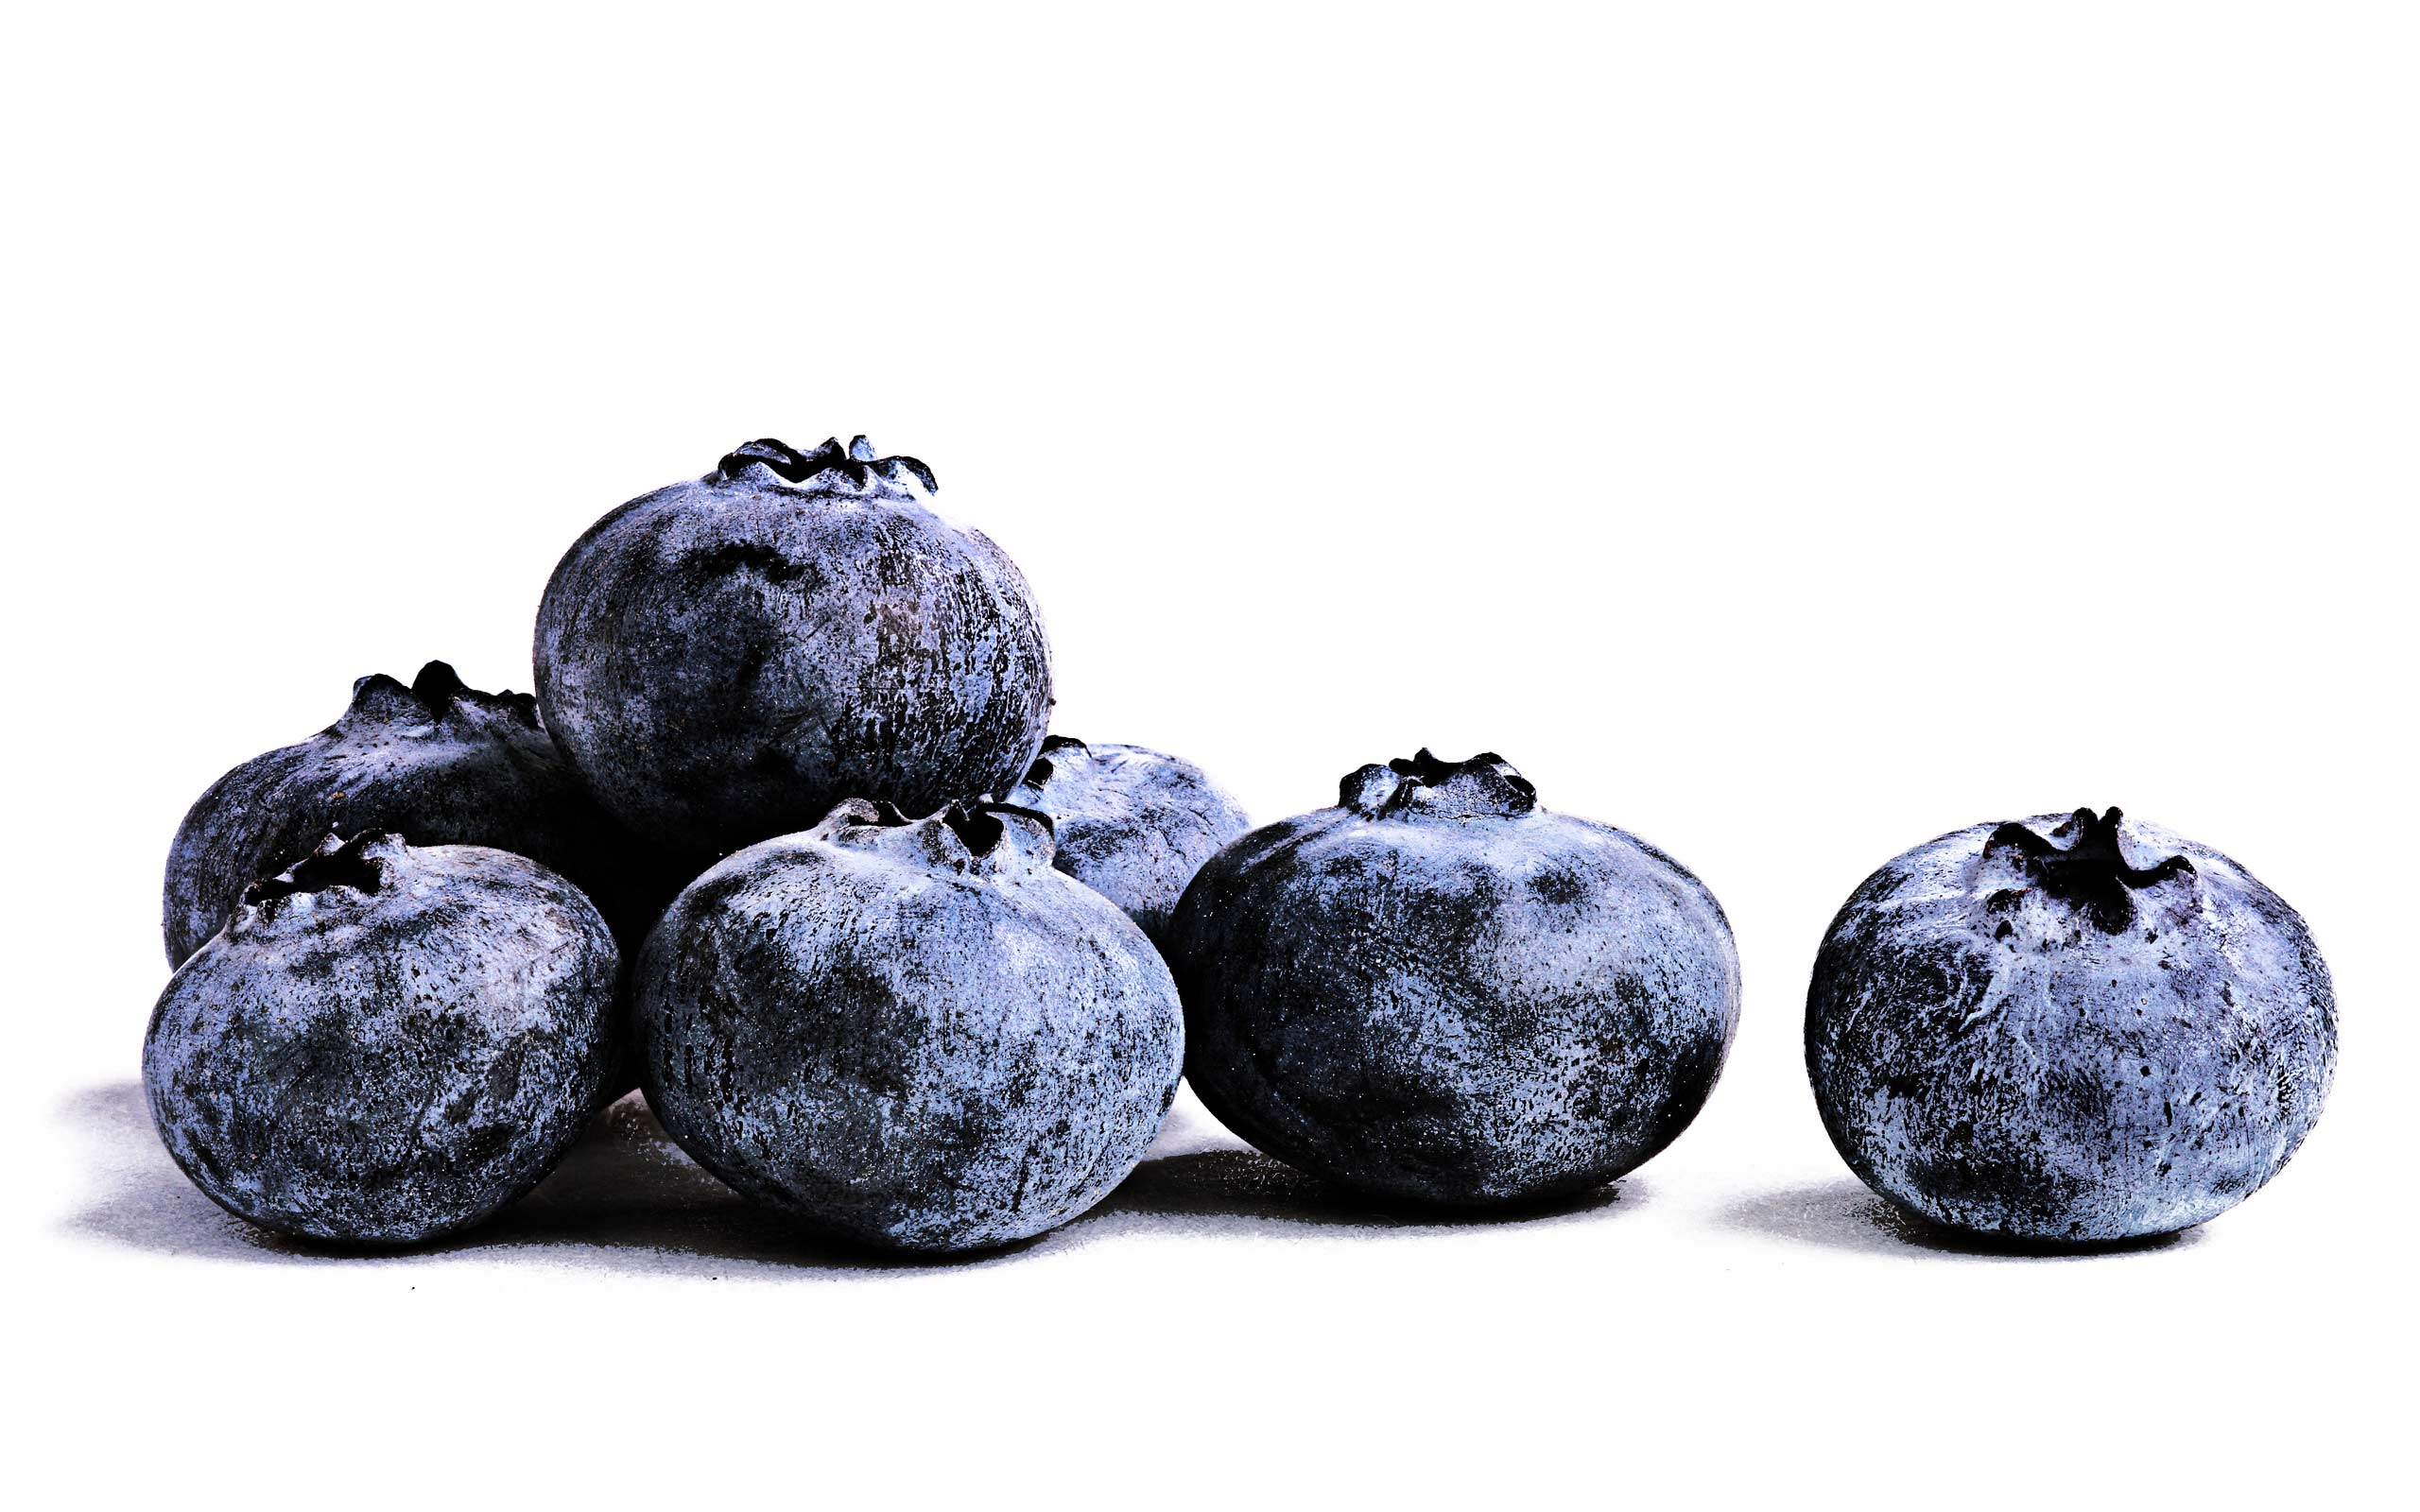 bluberries-gritty-blue-2560